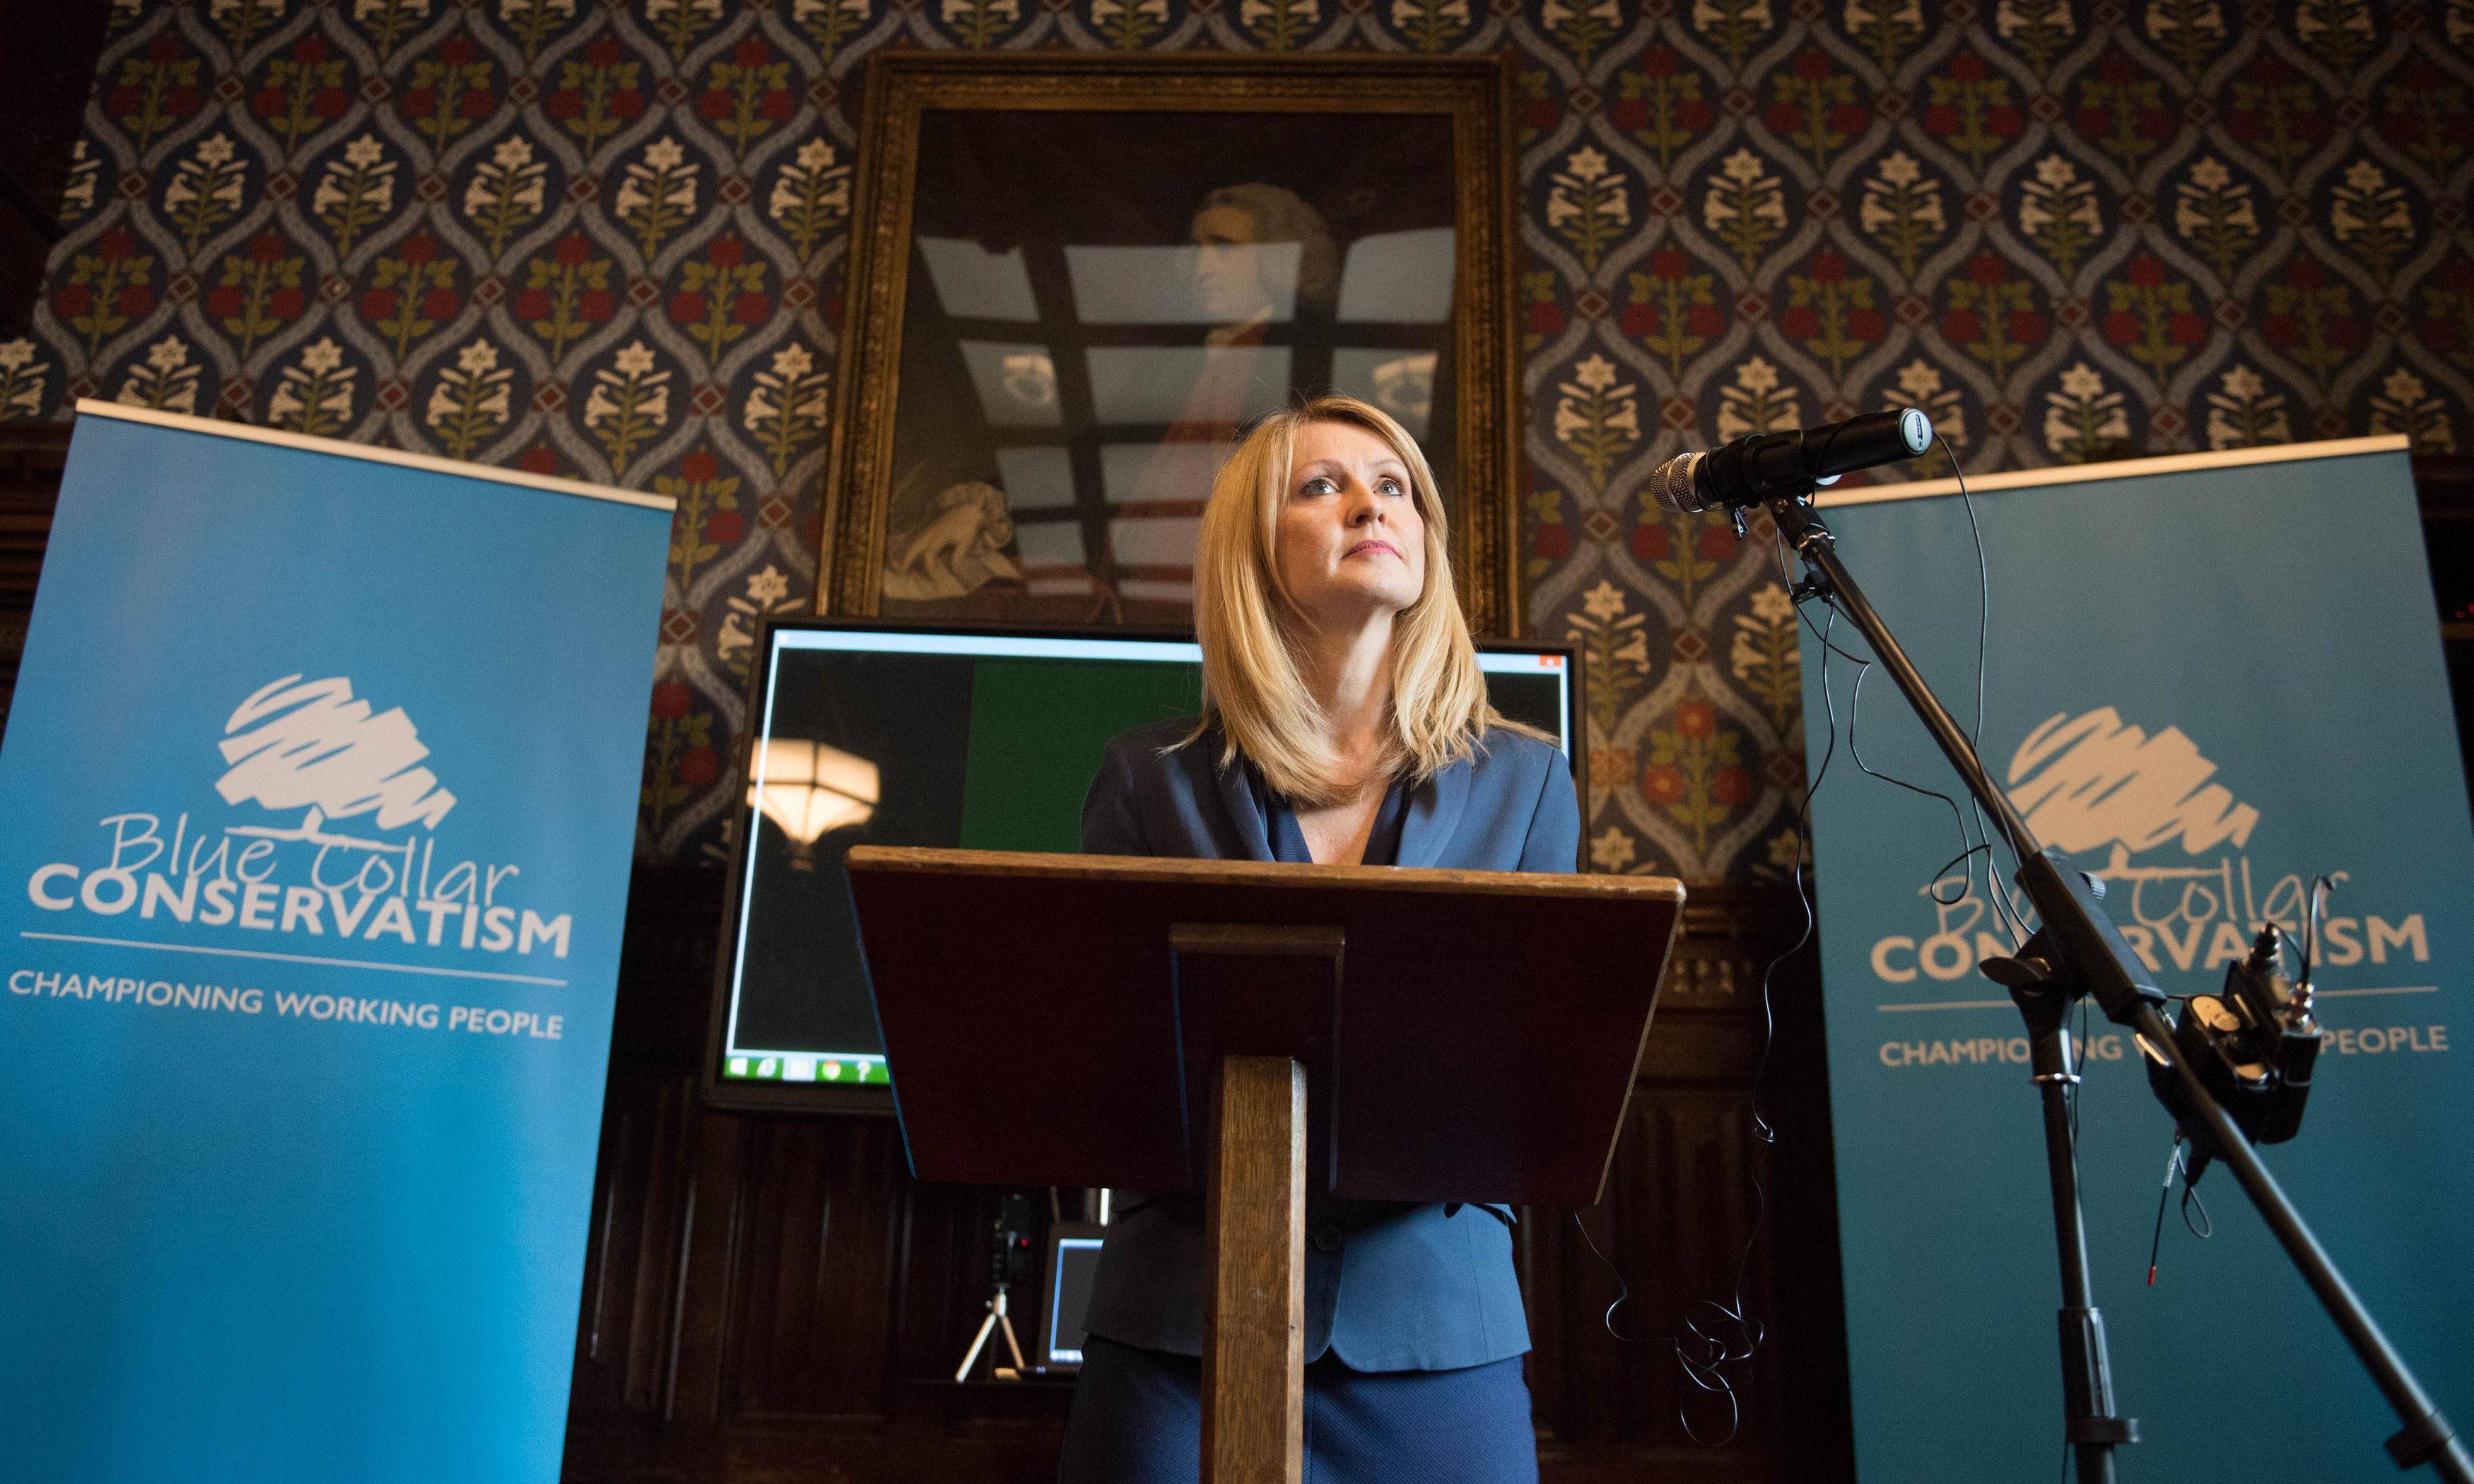 'Blue Collar Conservatism': Esther McVey launches Tory leadership bid